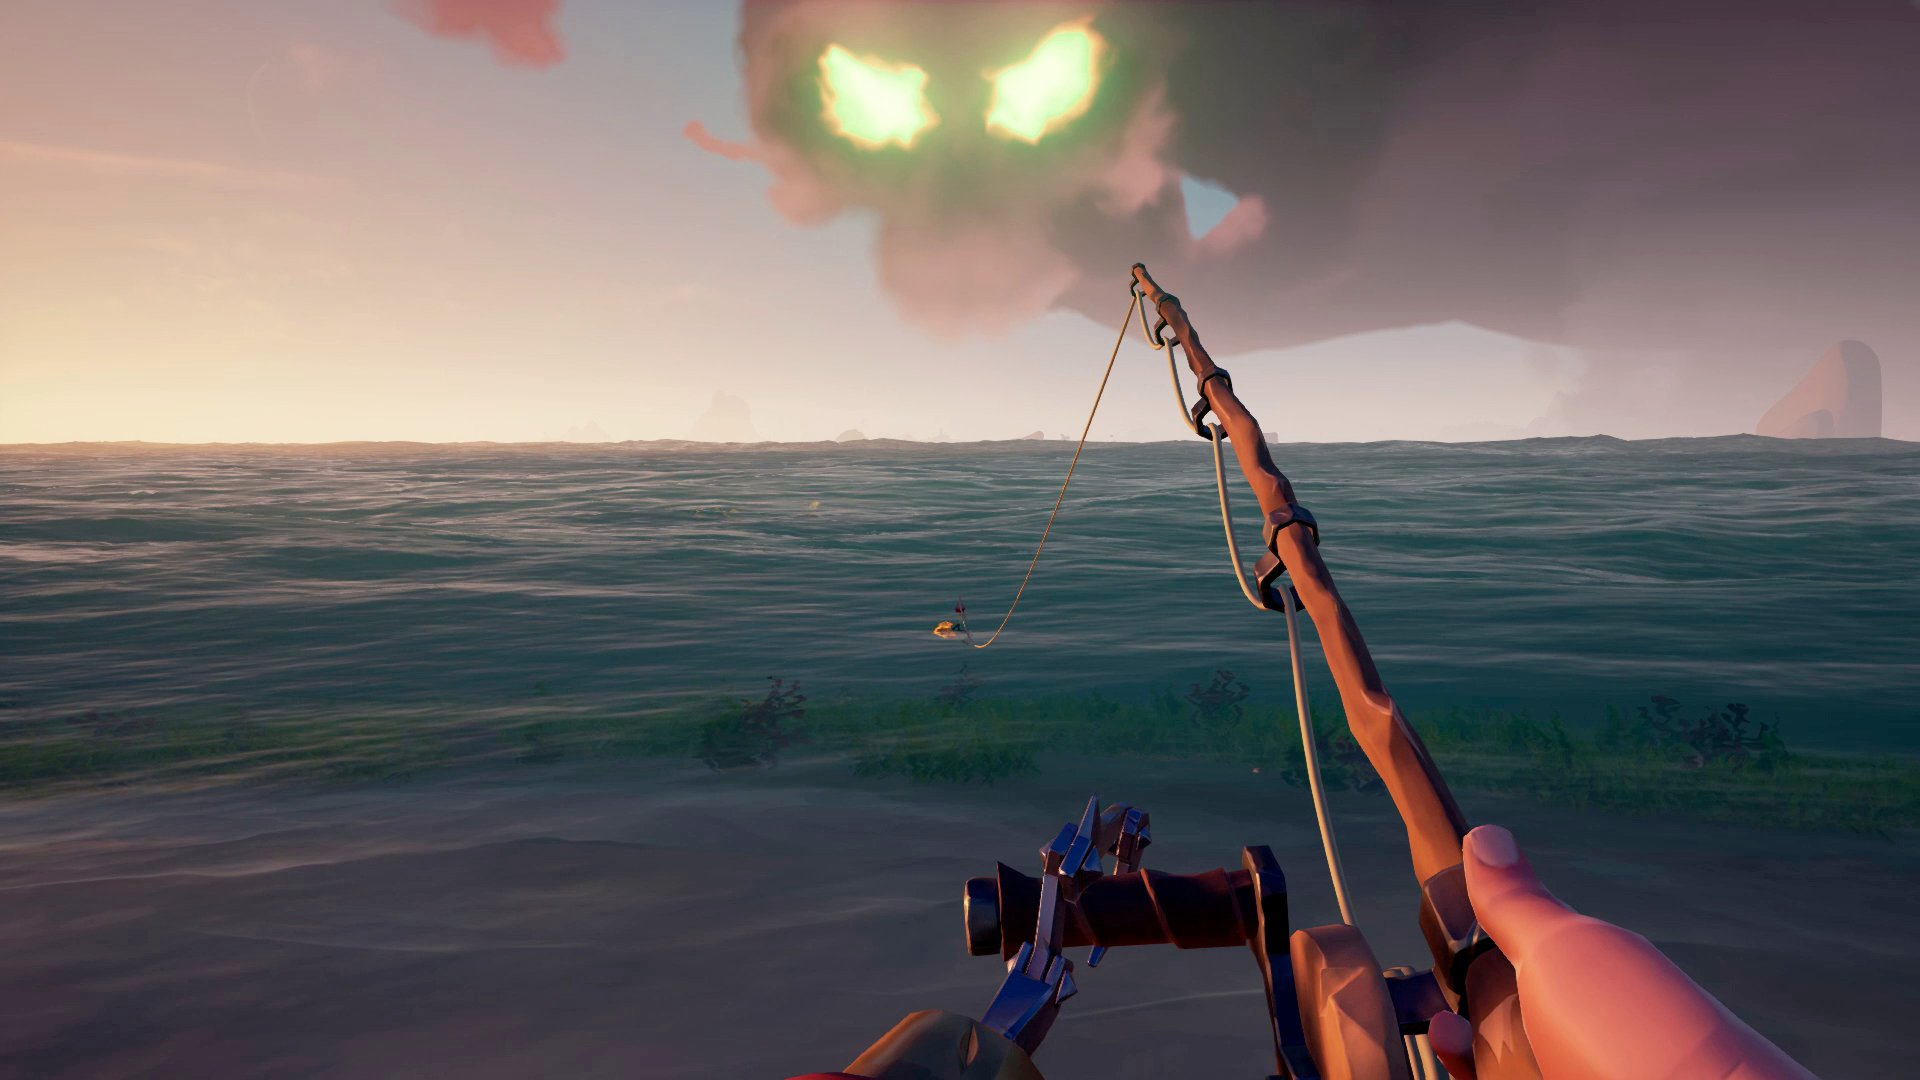 Today on Impulse, we discuss whether or not Sea of Thieves is worth revisiting in 2019!